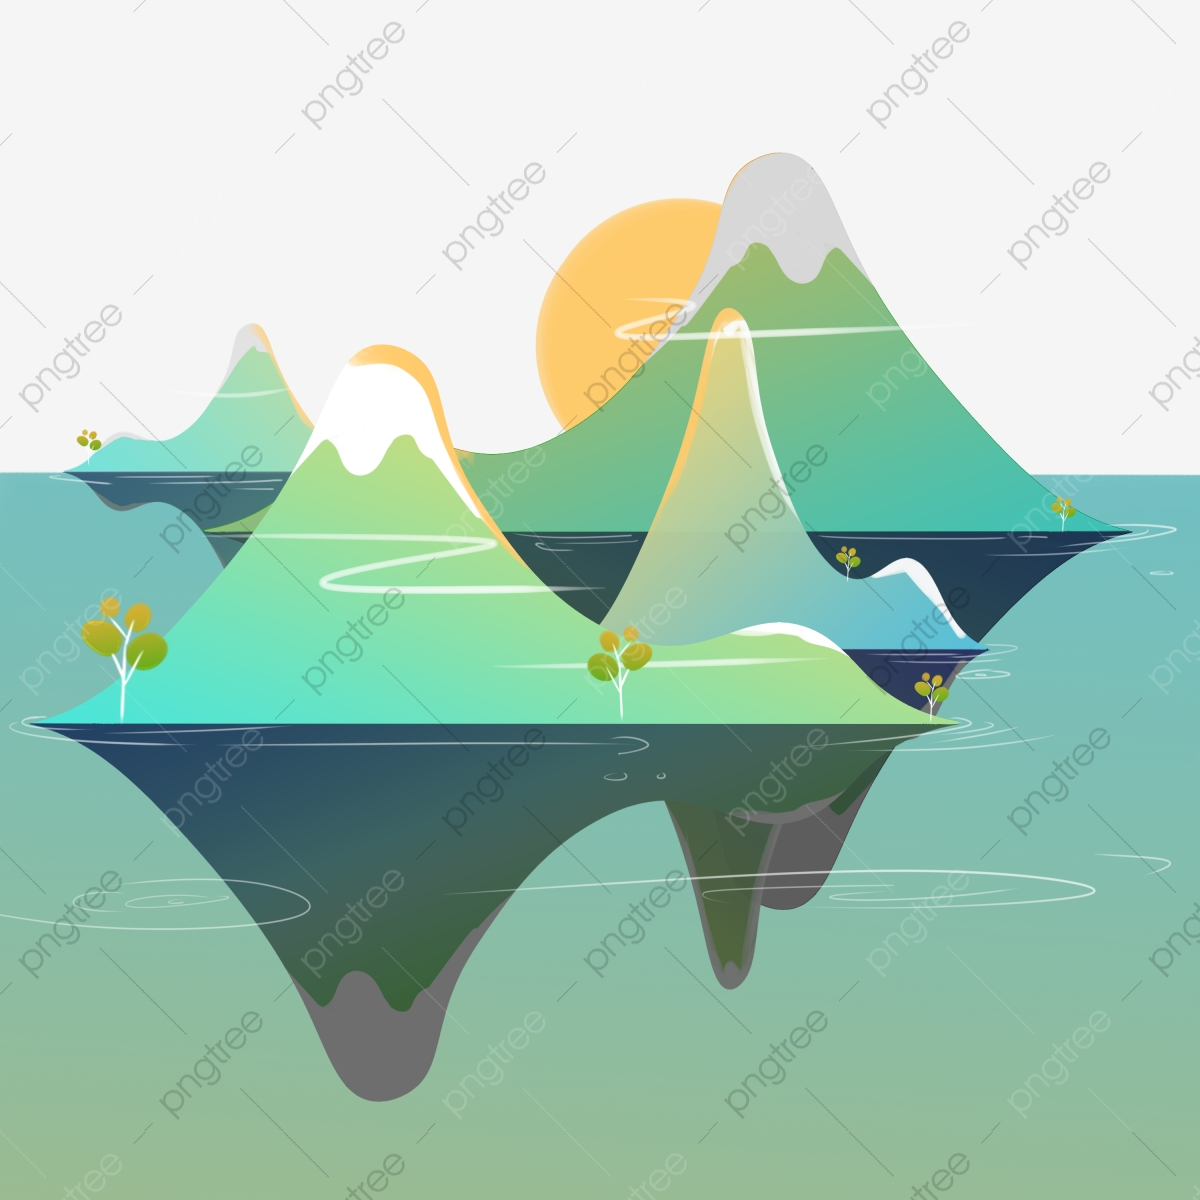 Sun With Water Wave Icon Vector Stock Vector - Illustration of abstract,  sign: 118770777